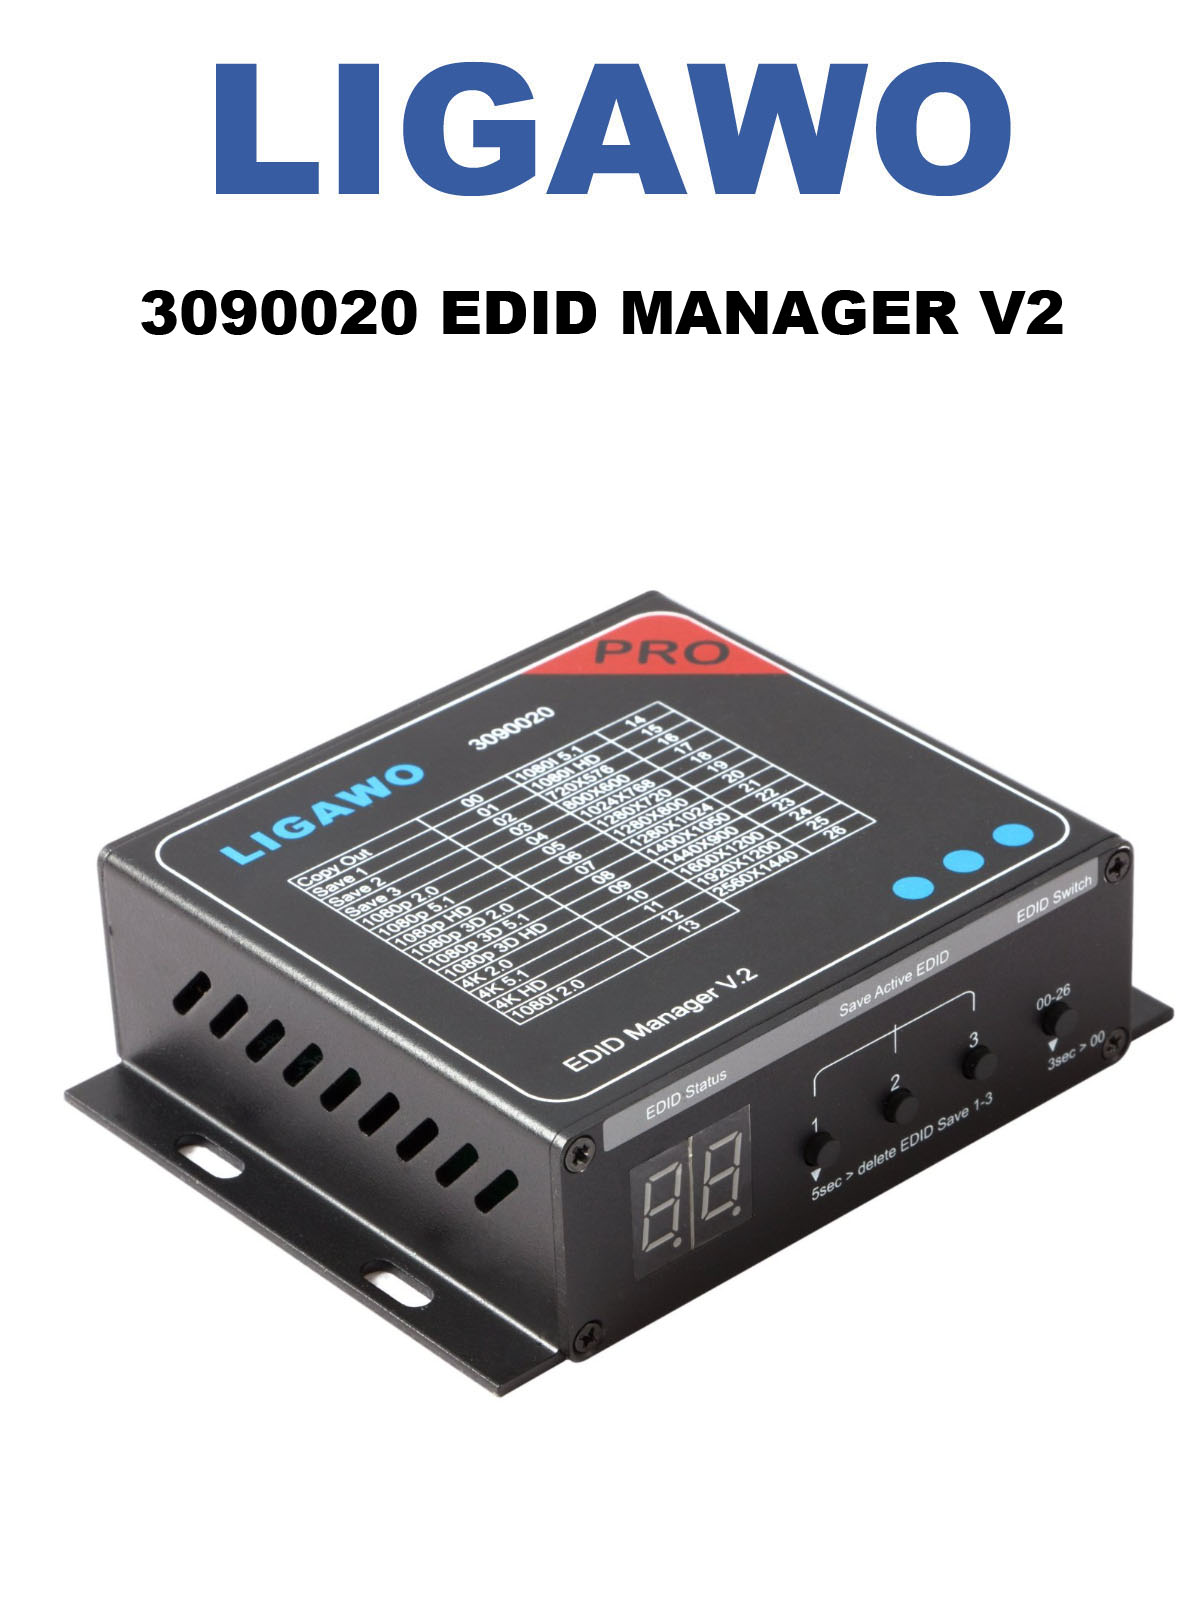 Ligawo 3090020 HDMI EDID Manager V2 | Audio / Video EDID Voreinstellungen bis 4Kx2K / 7.1 Mehrkanal | 3x EDID Save Optionen